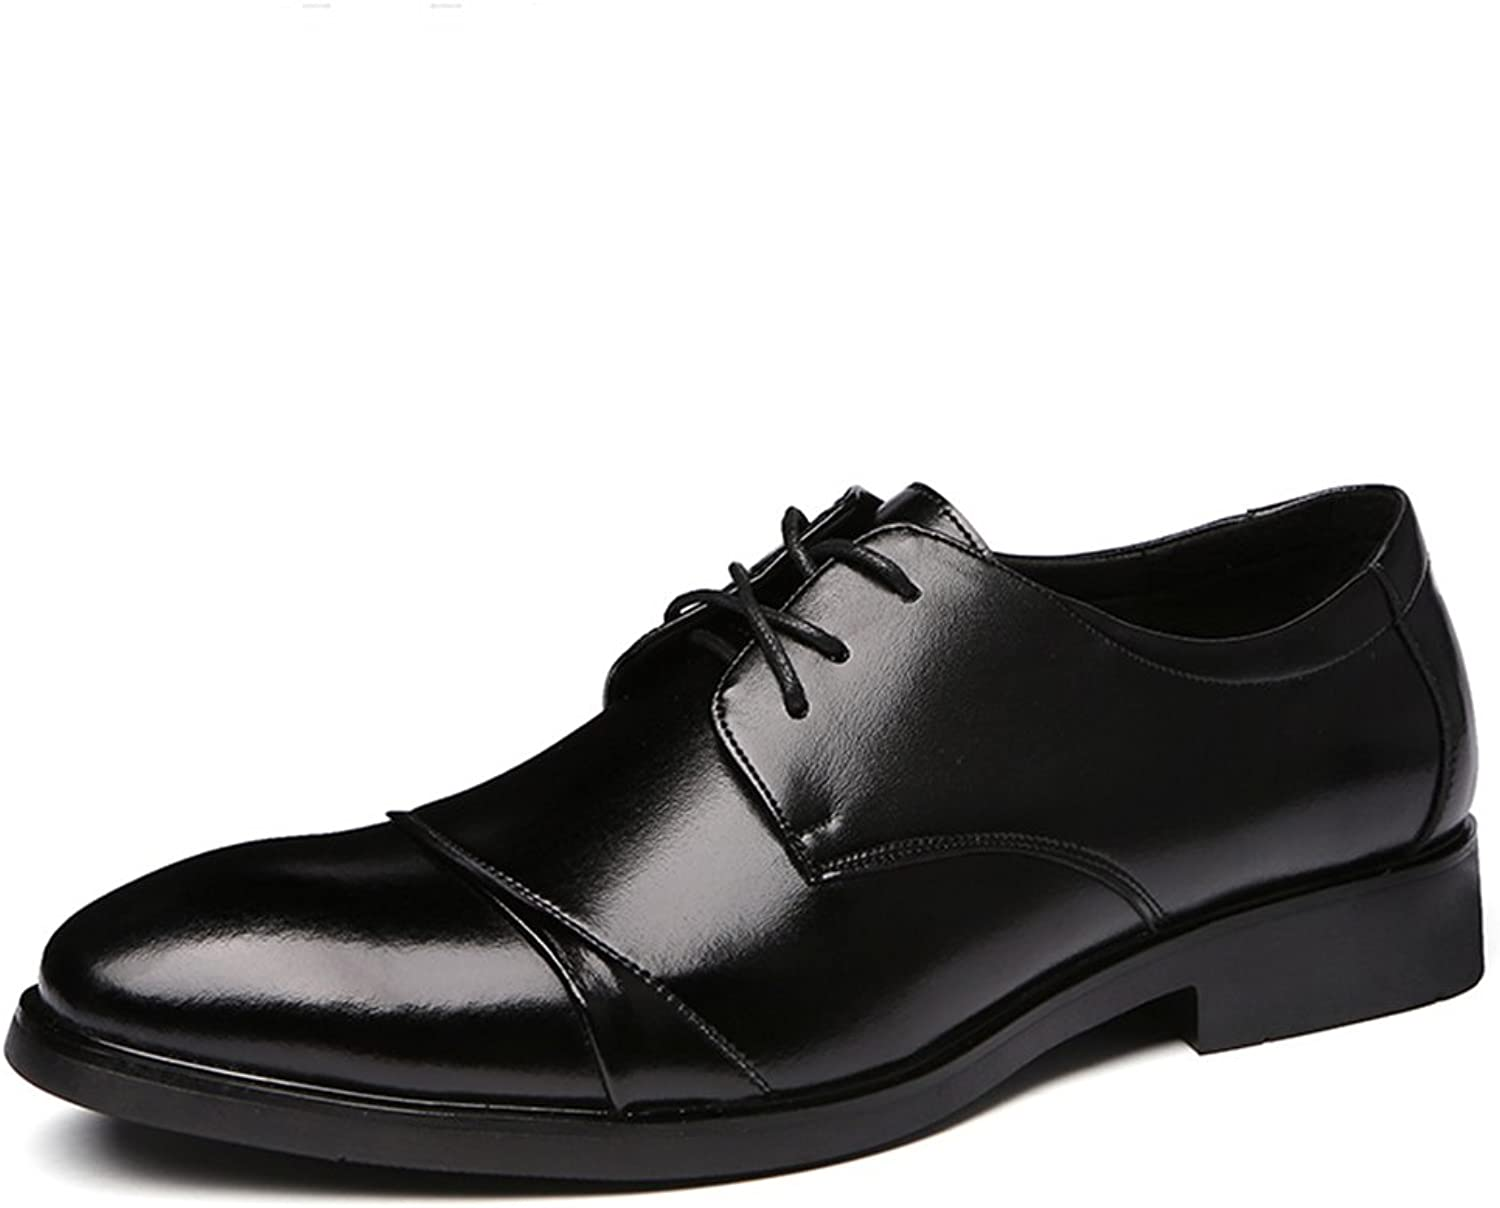 Men's Genuine Leather Formal Modern Classic Calfskin Lace Up Leather Lined Oxford Dress shoes ( Size   6.5 D(M)US )